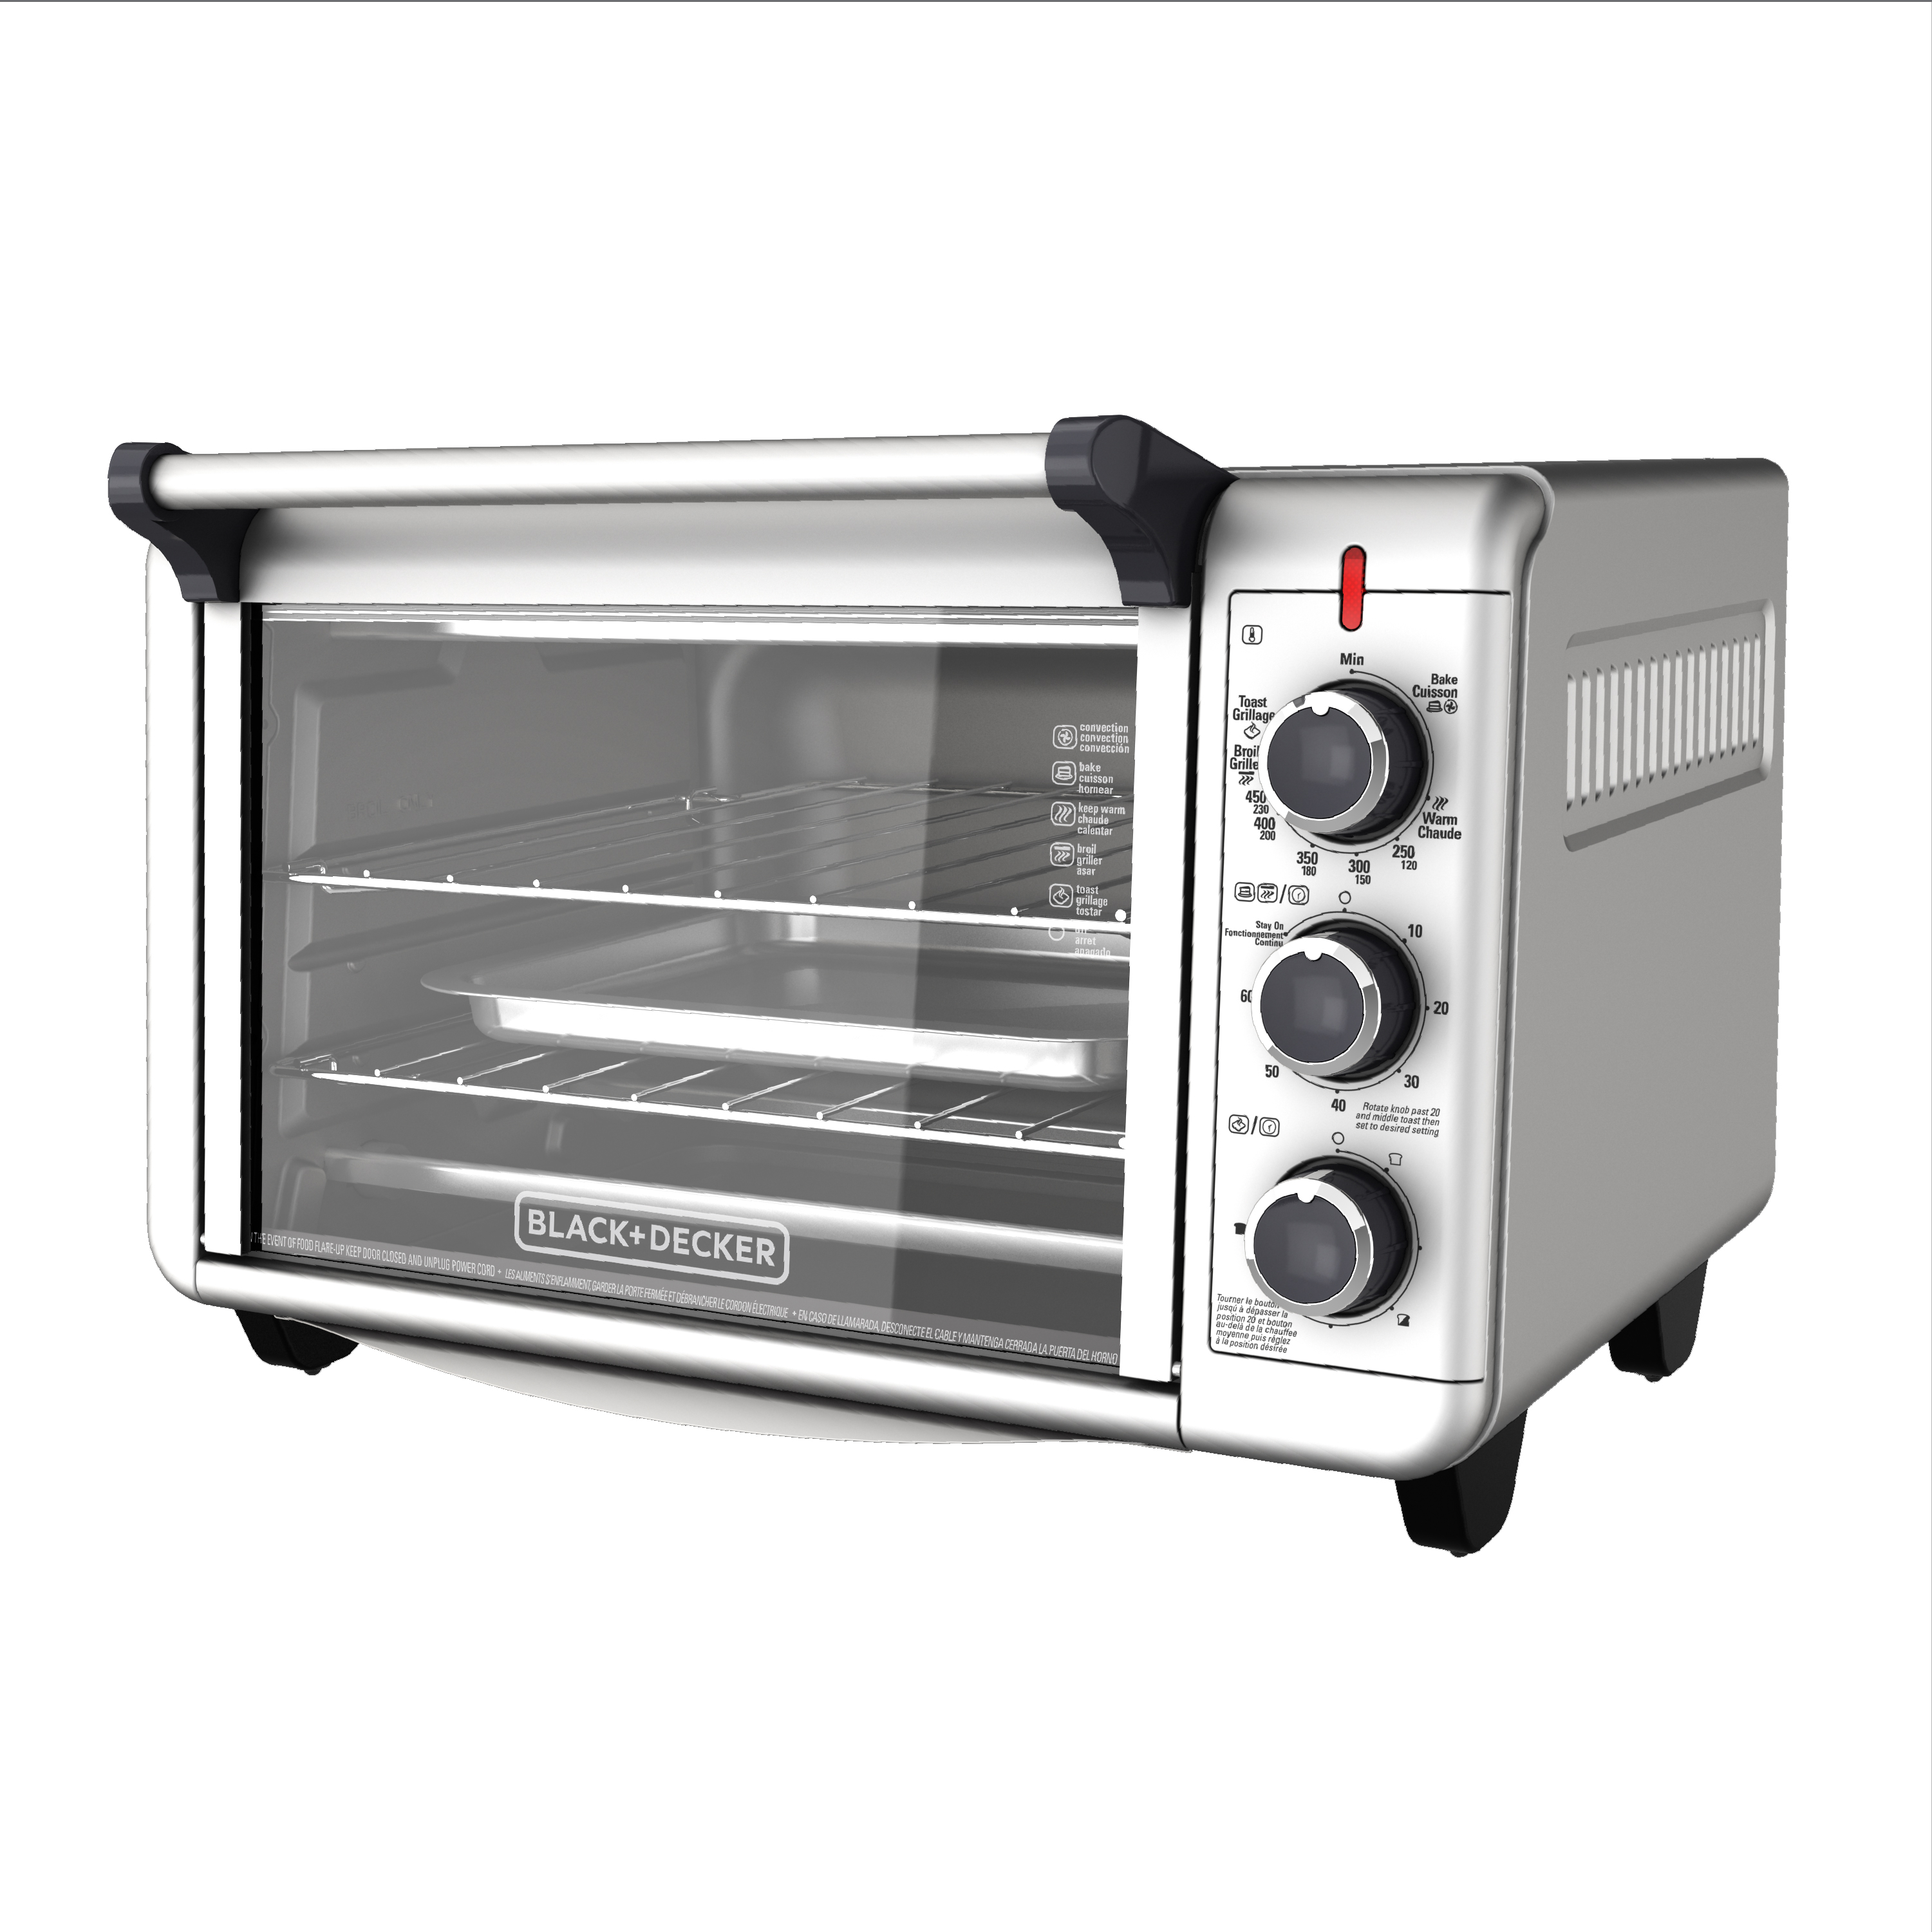 Black Decker Convection Countertop Oven Stainless Steel